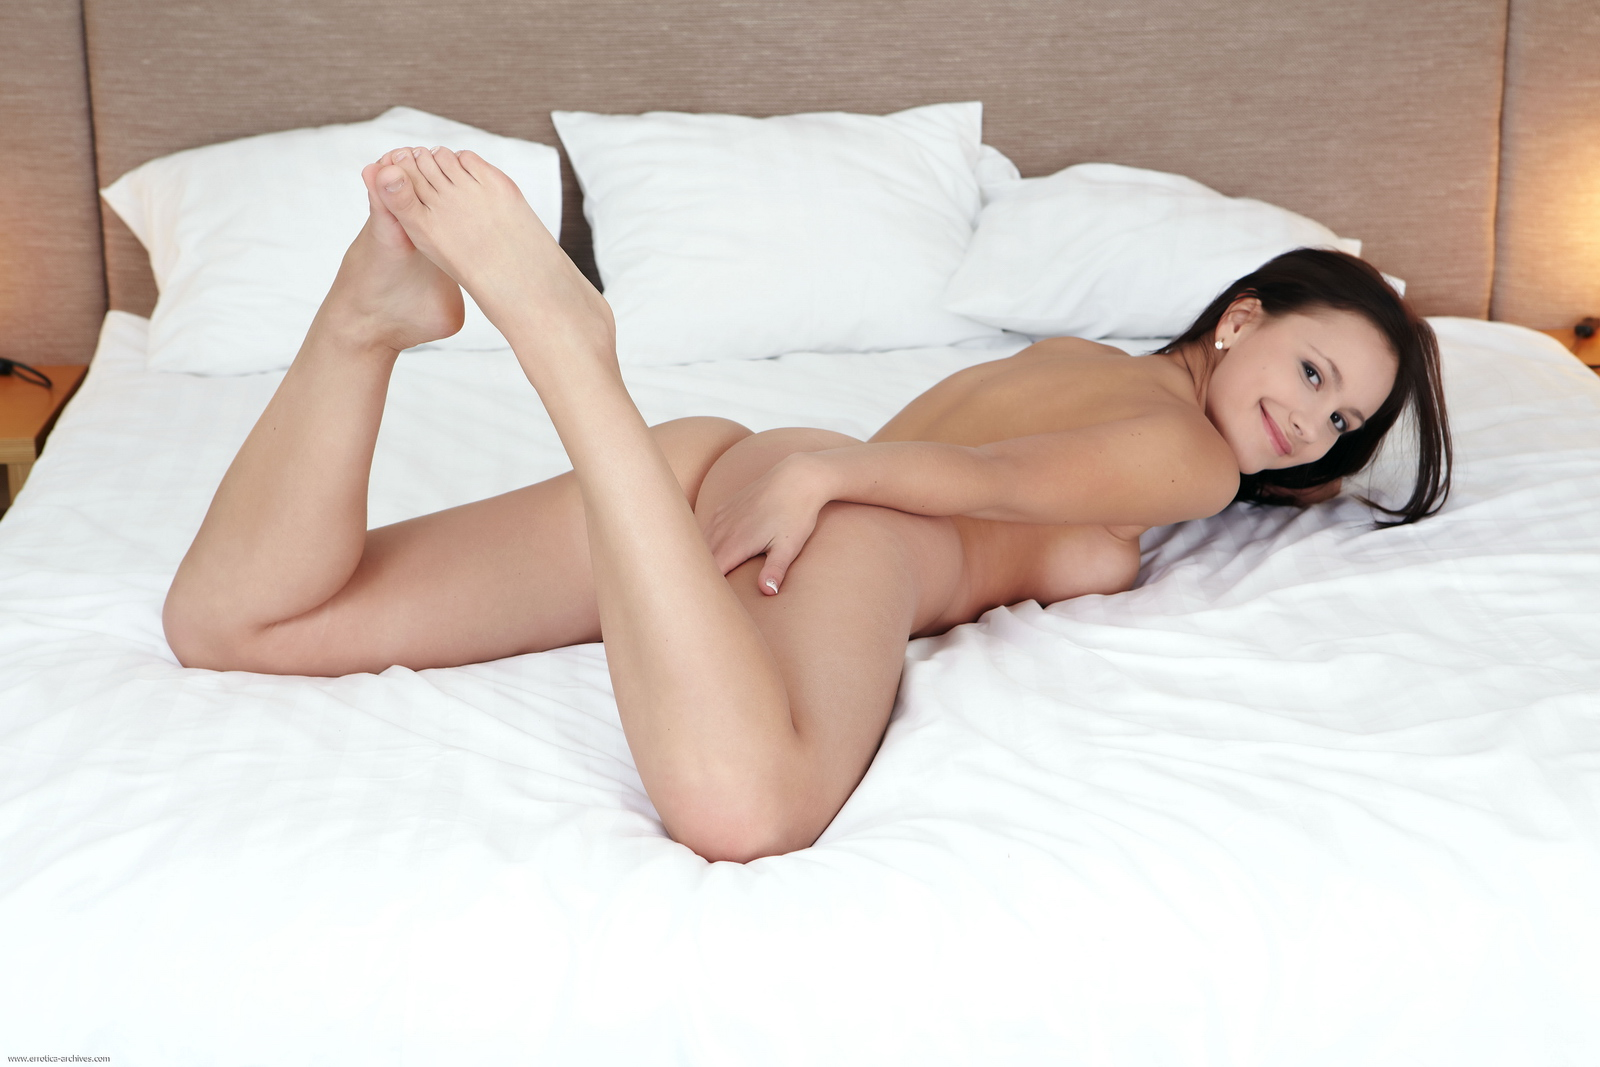 vicky-naked-bedroom-cute-ass-errotica-archives-15